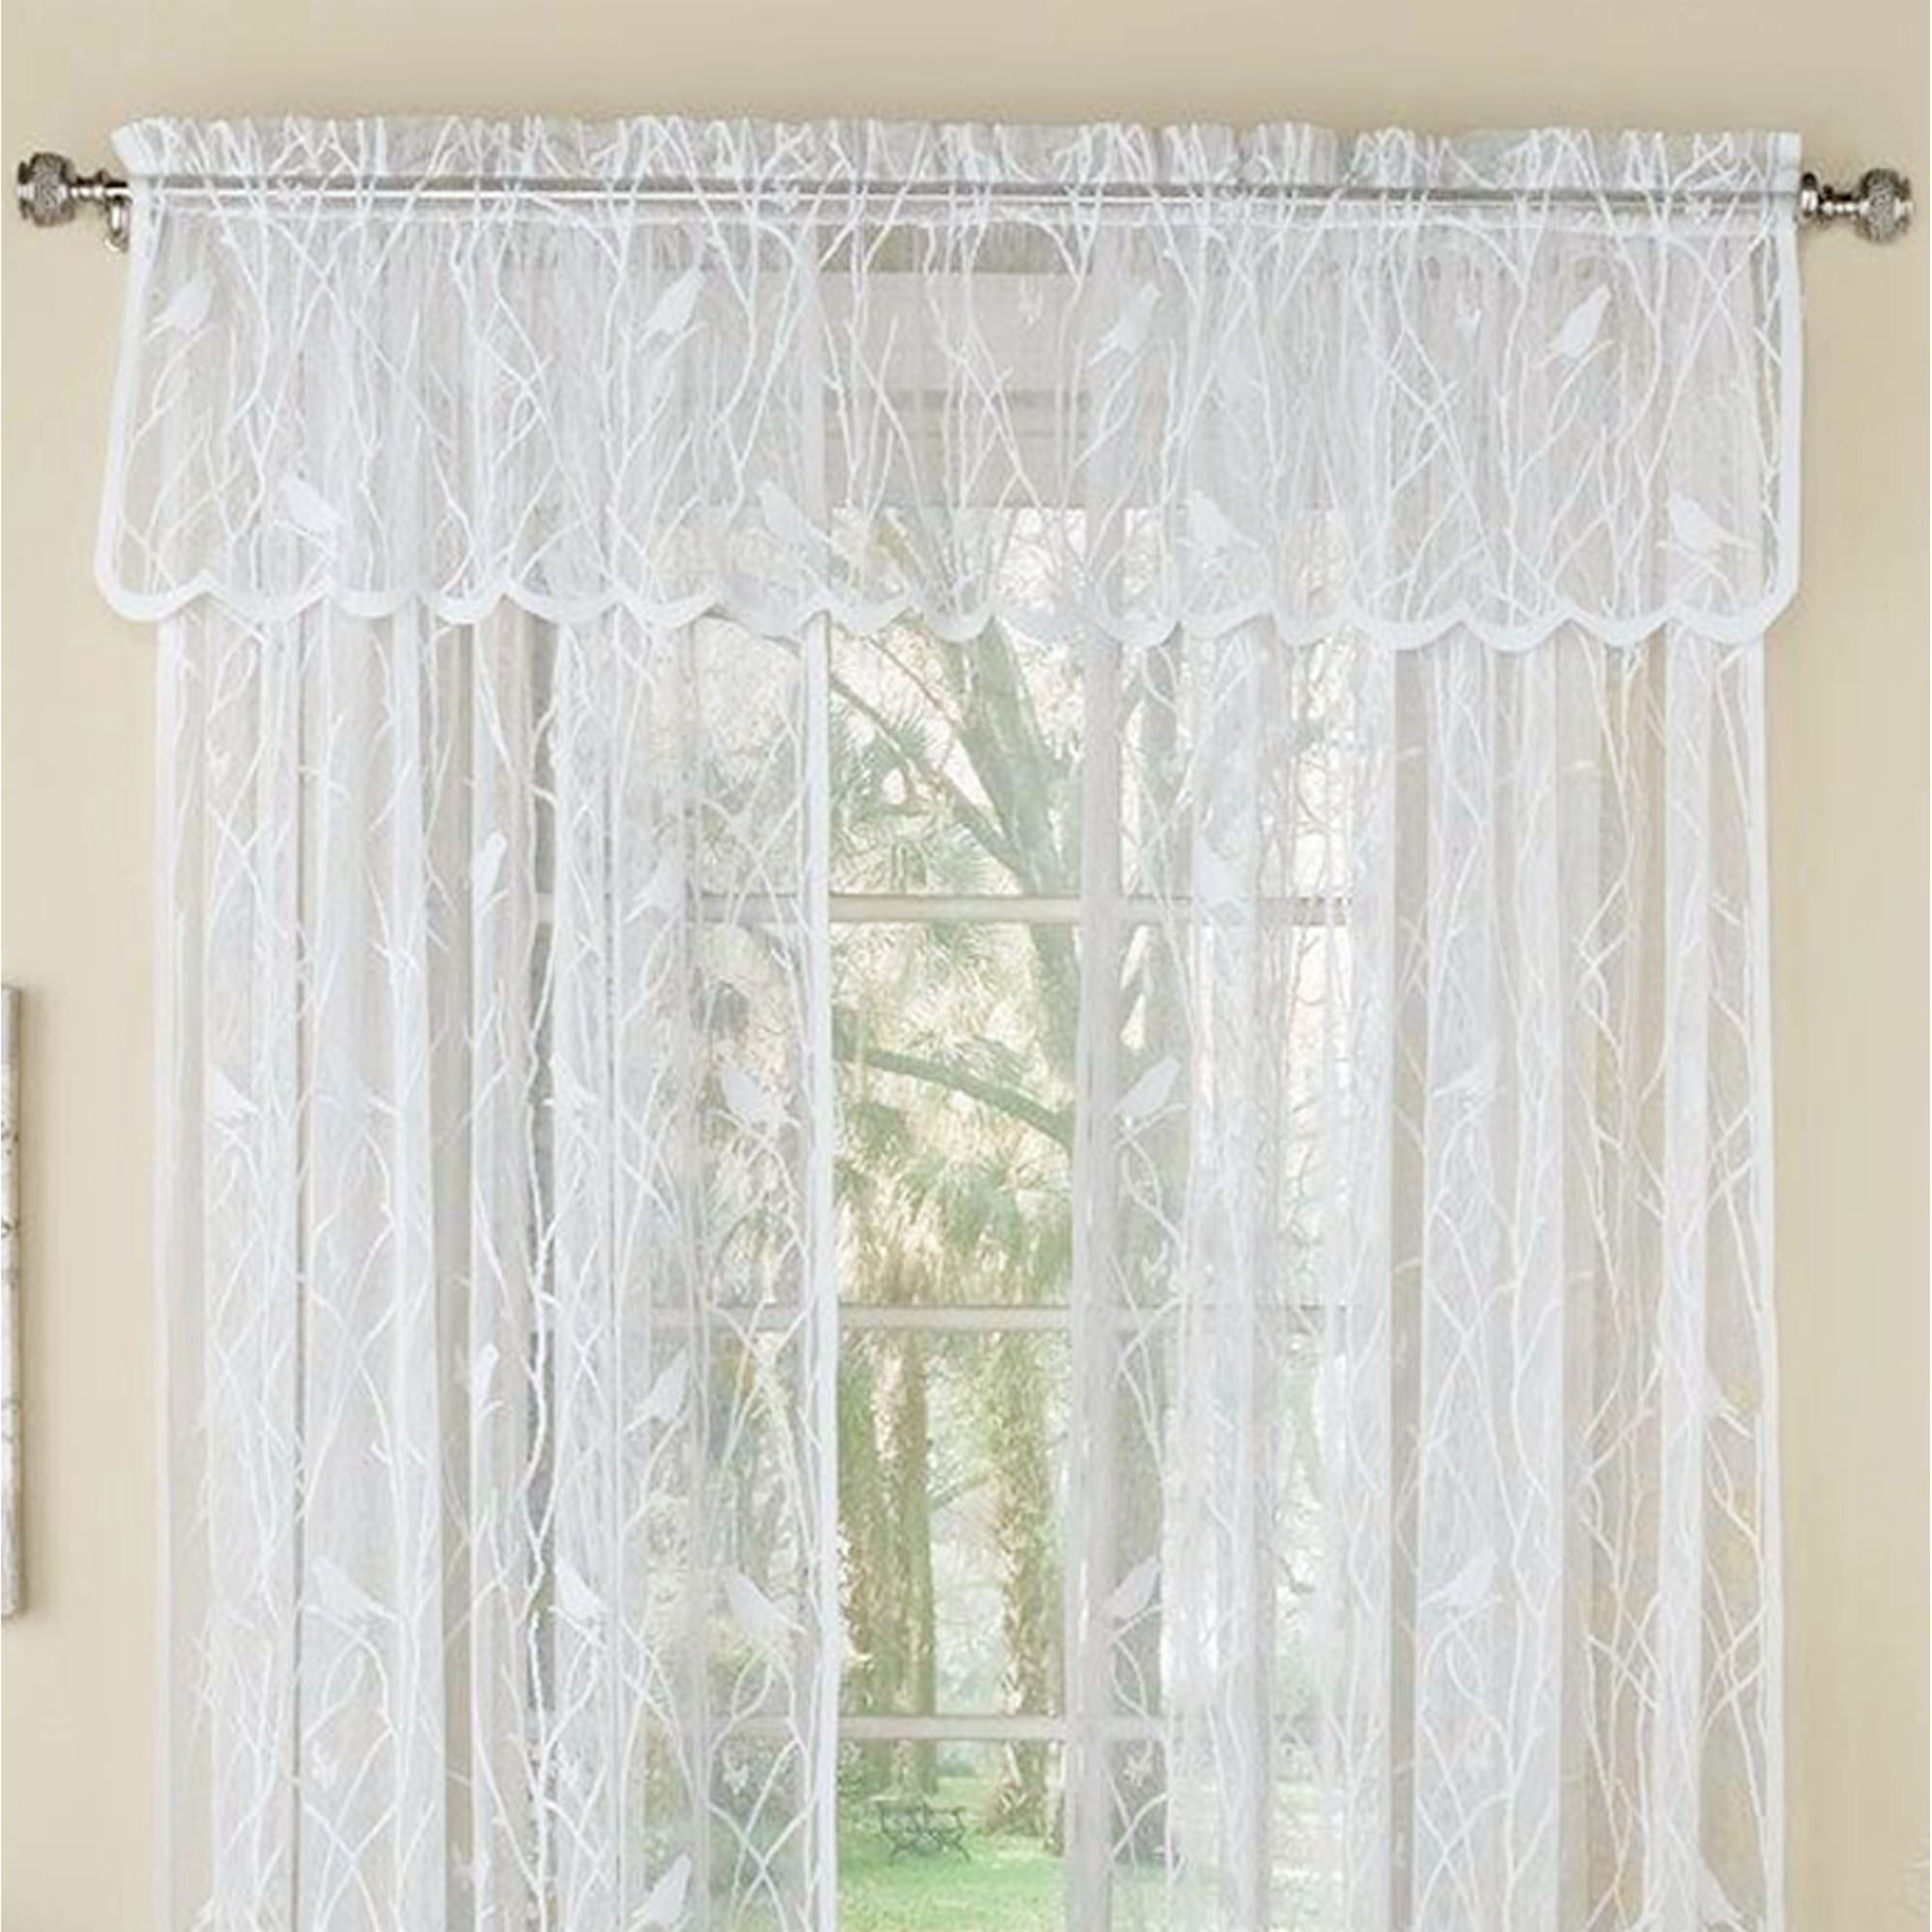 Troubadour Birds Lace Curtain Window Treatment